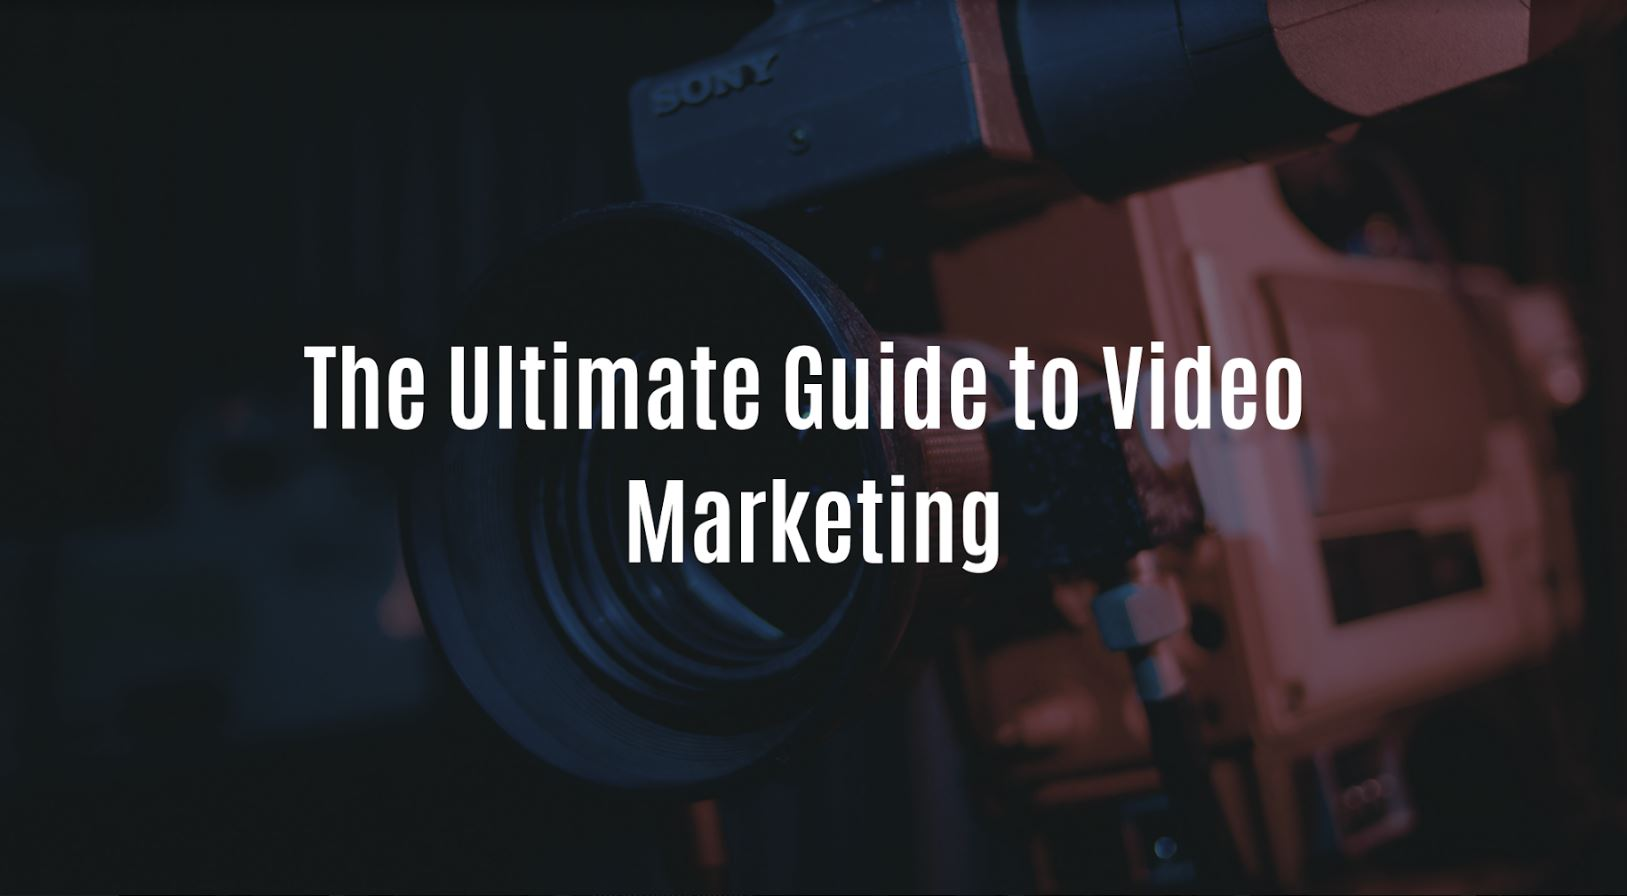 The Ultimate Guide to Video Marketing.JPG